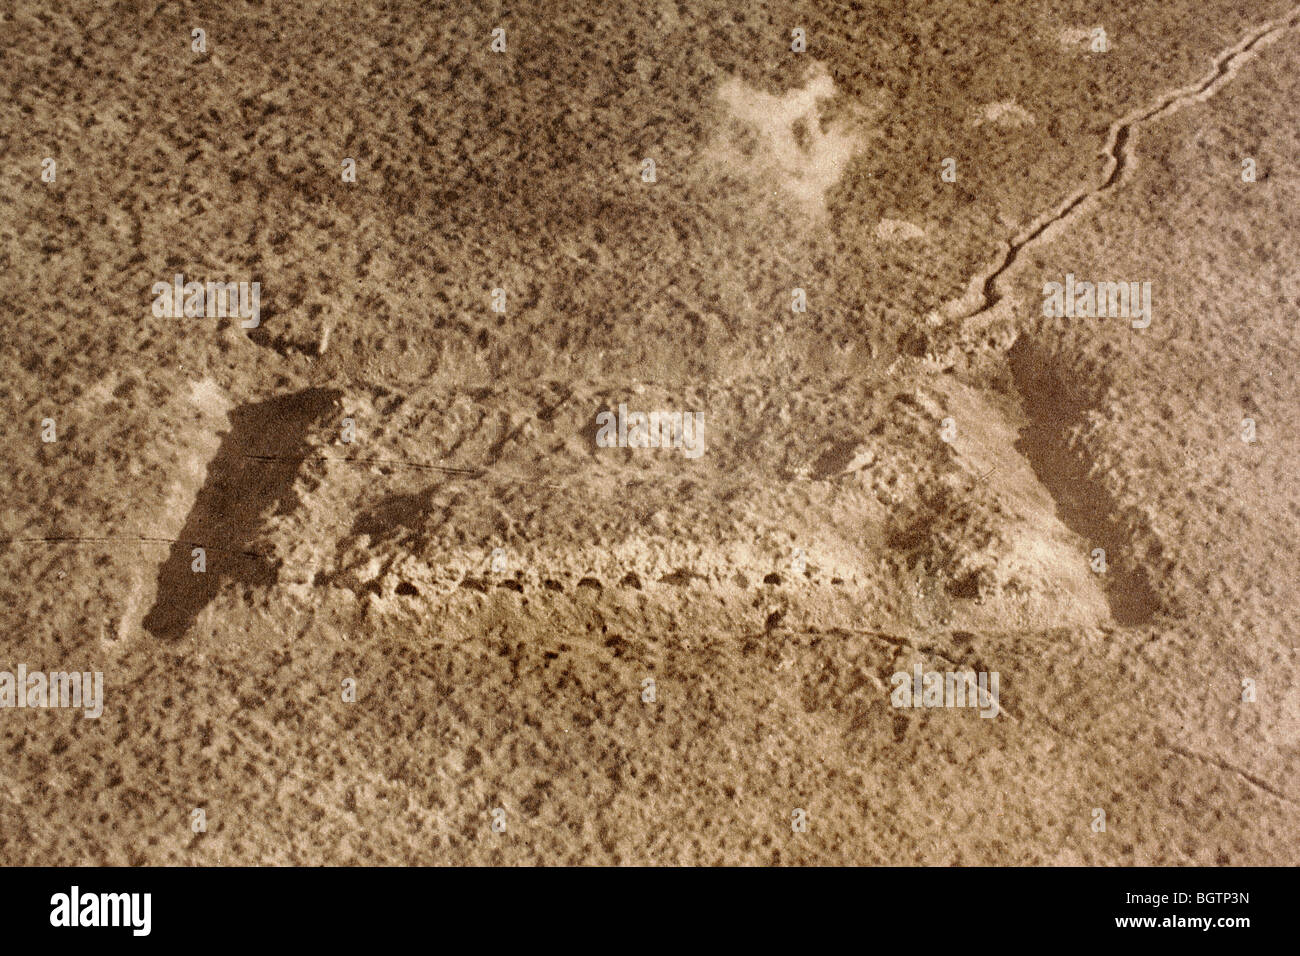 Aerial view showing state of the Fort de Vaux, Verdun, after protracted artillery shelling in 1916. - Stock Image